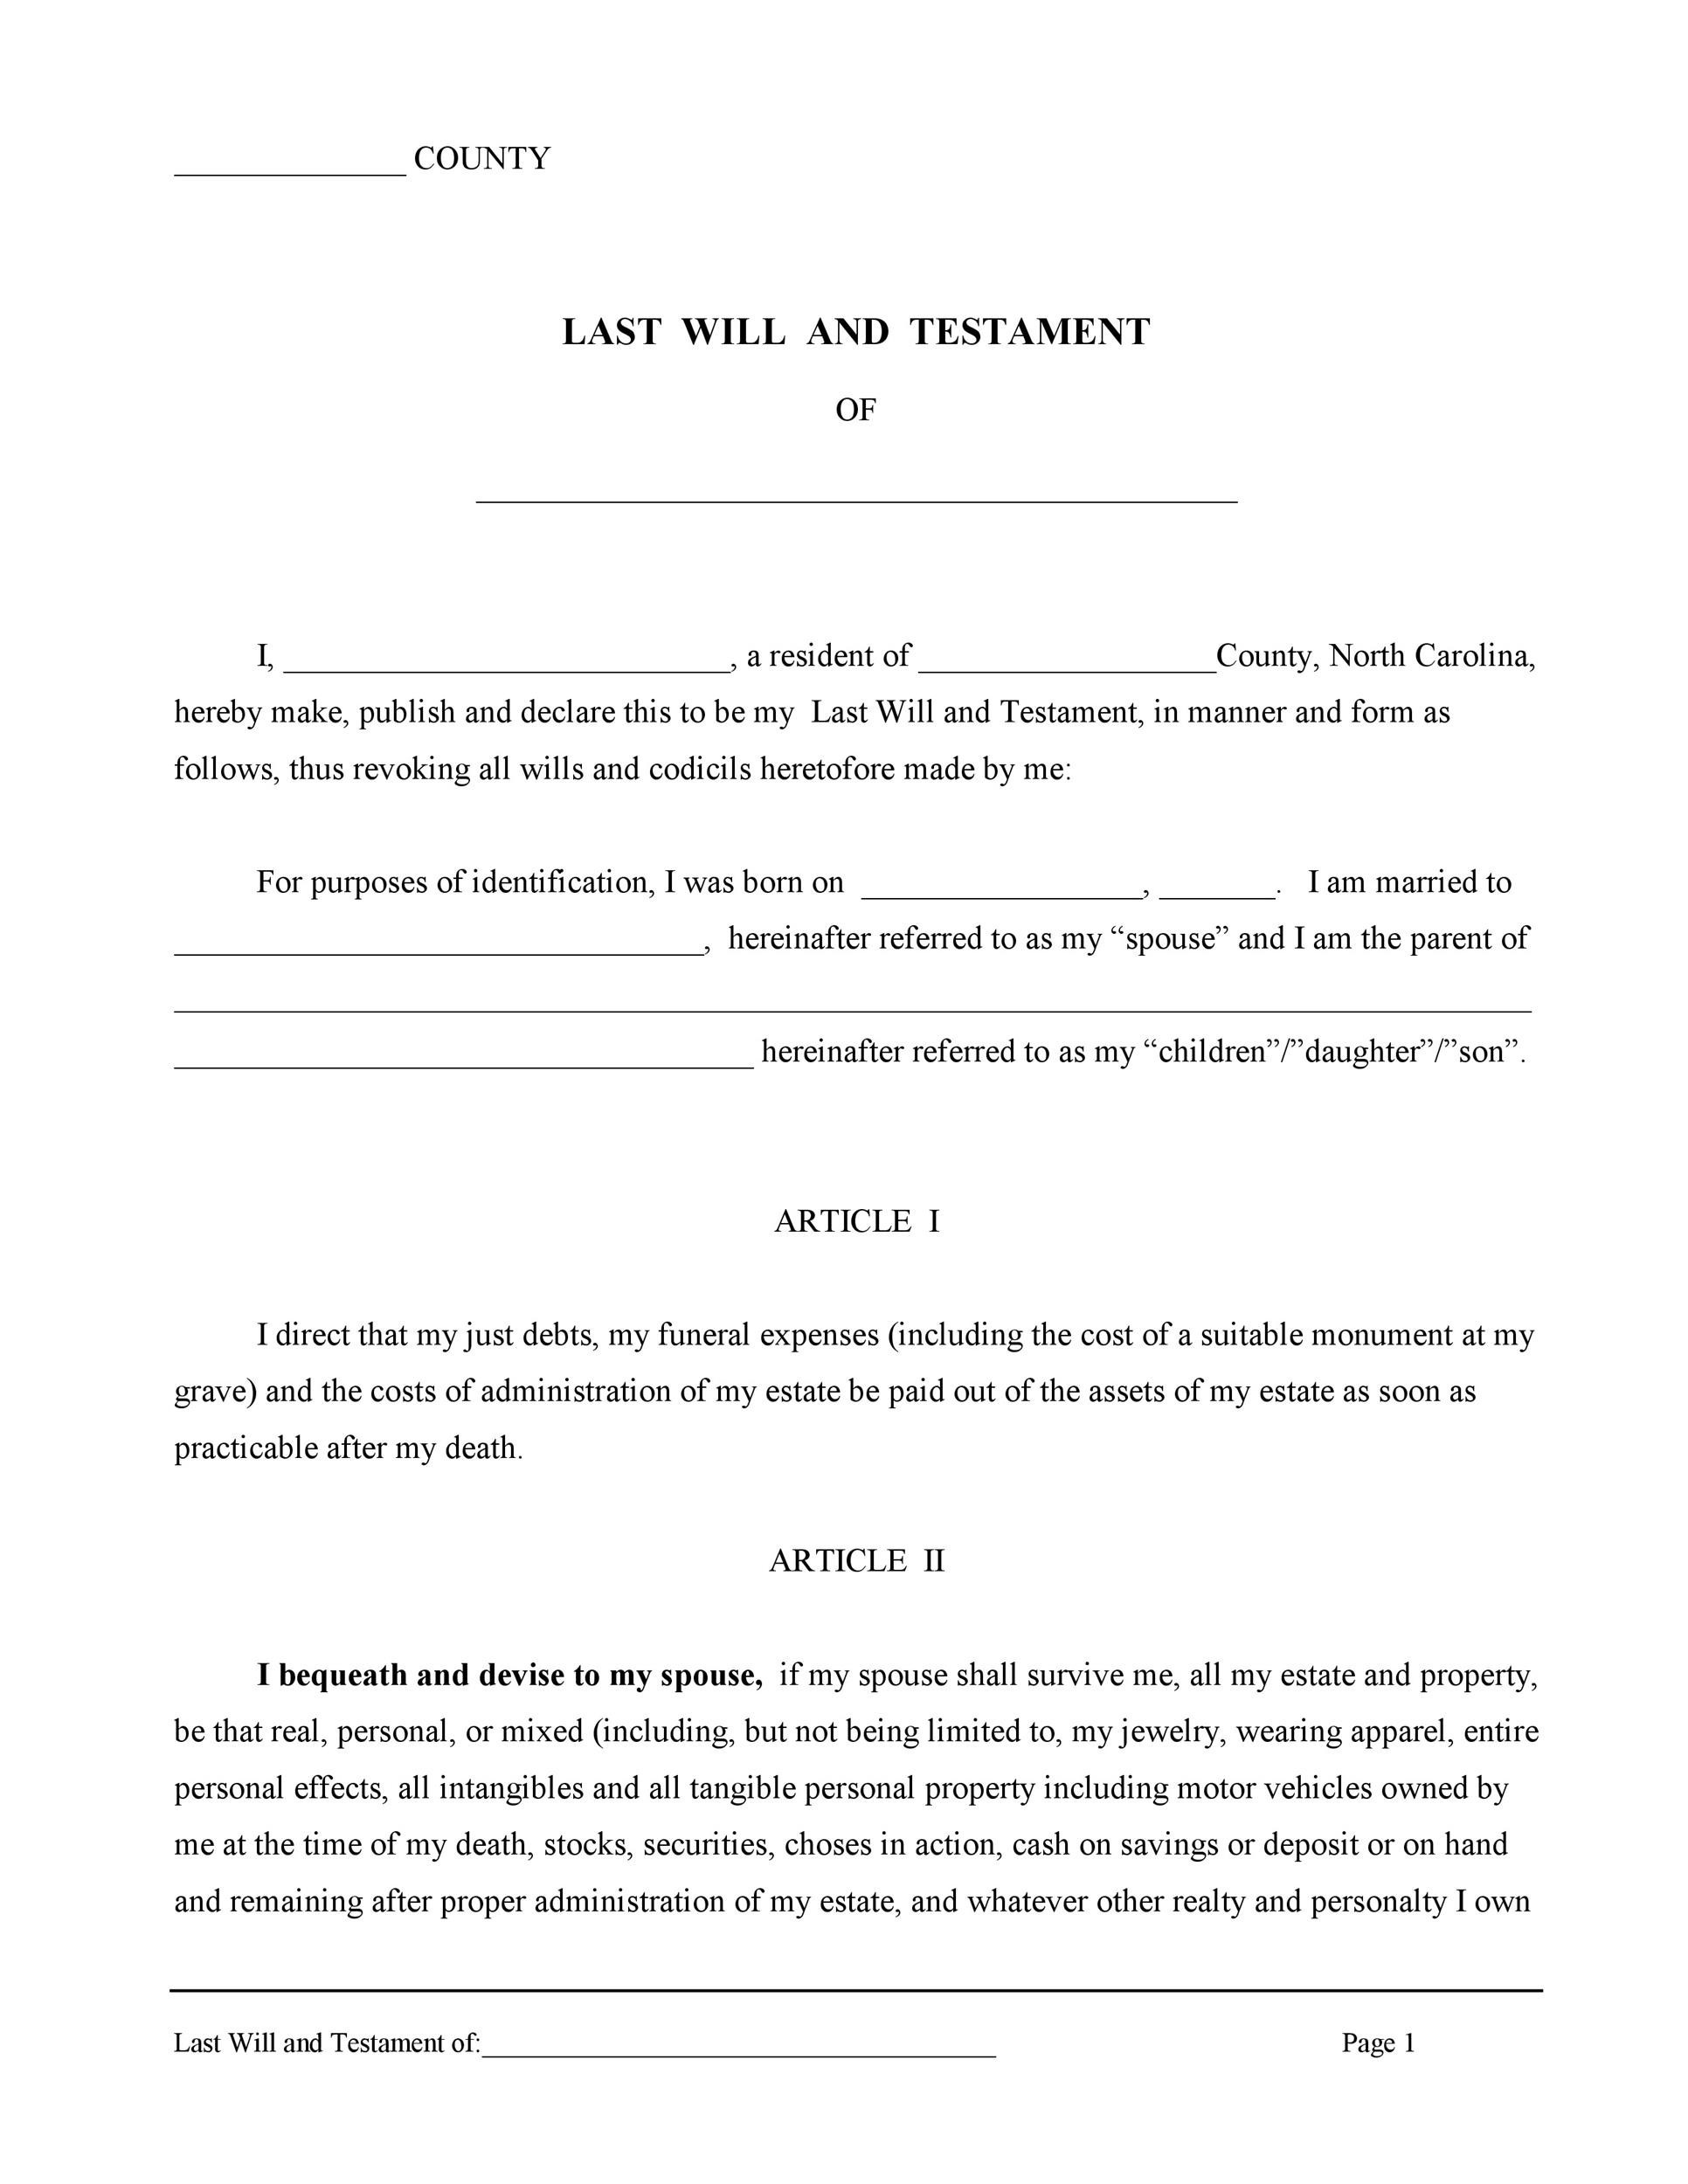 Free Last will and testament template 20